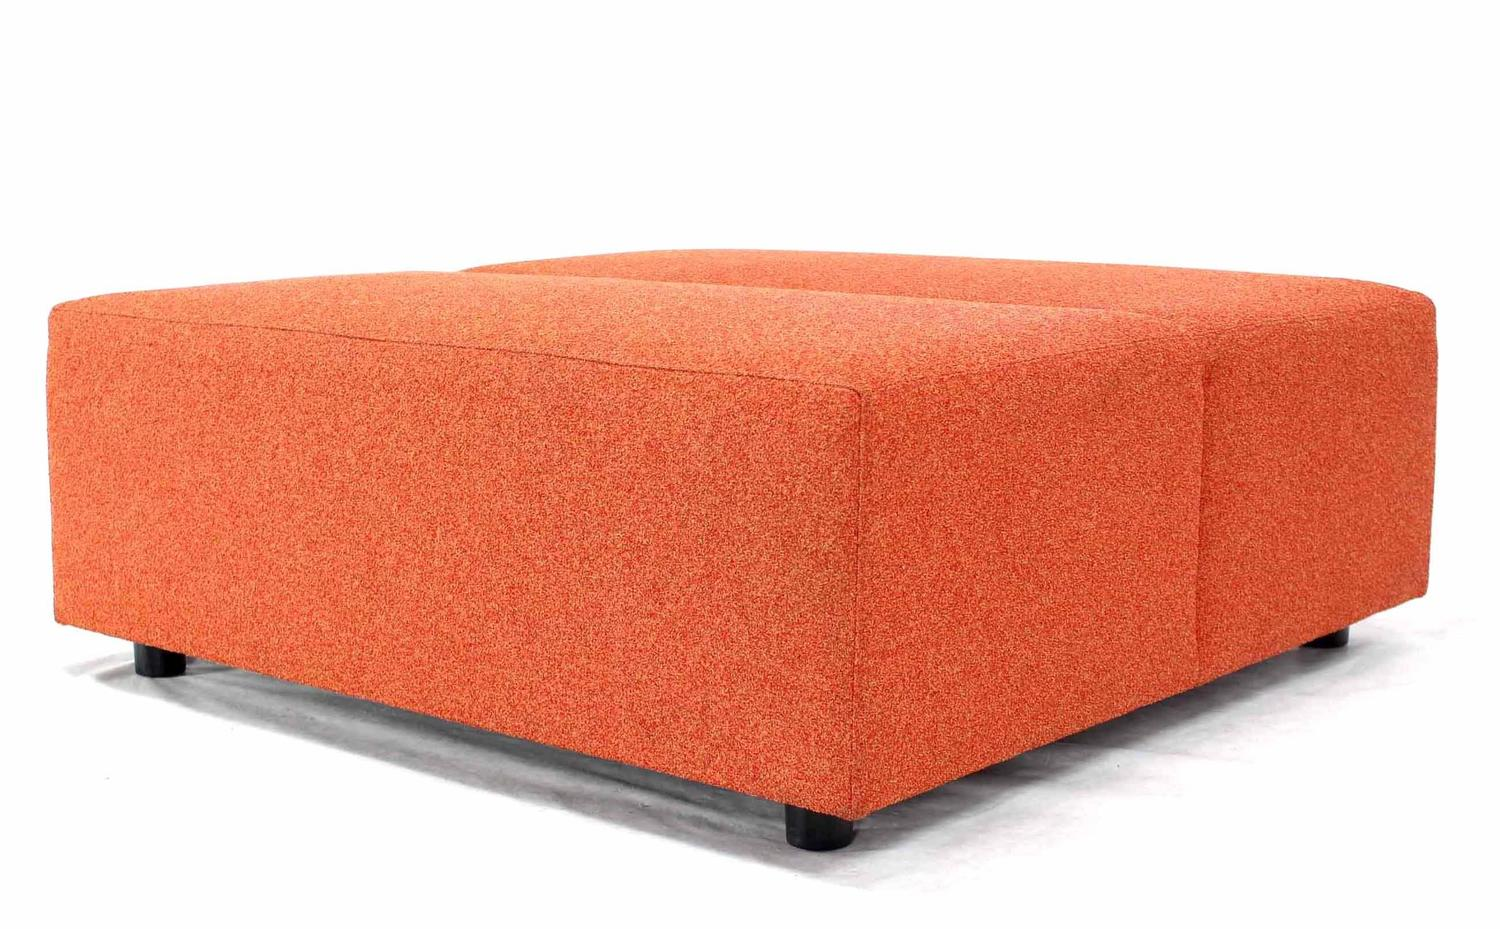 Pair Of Large Orange Ottomans By Steelcase For Sale At 1stdibs